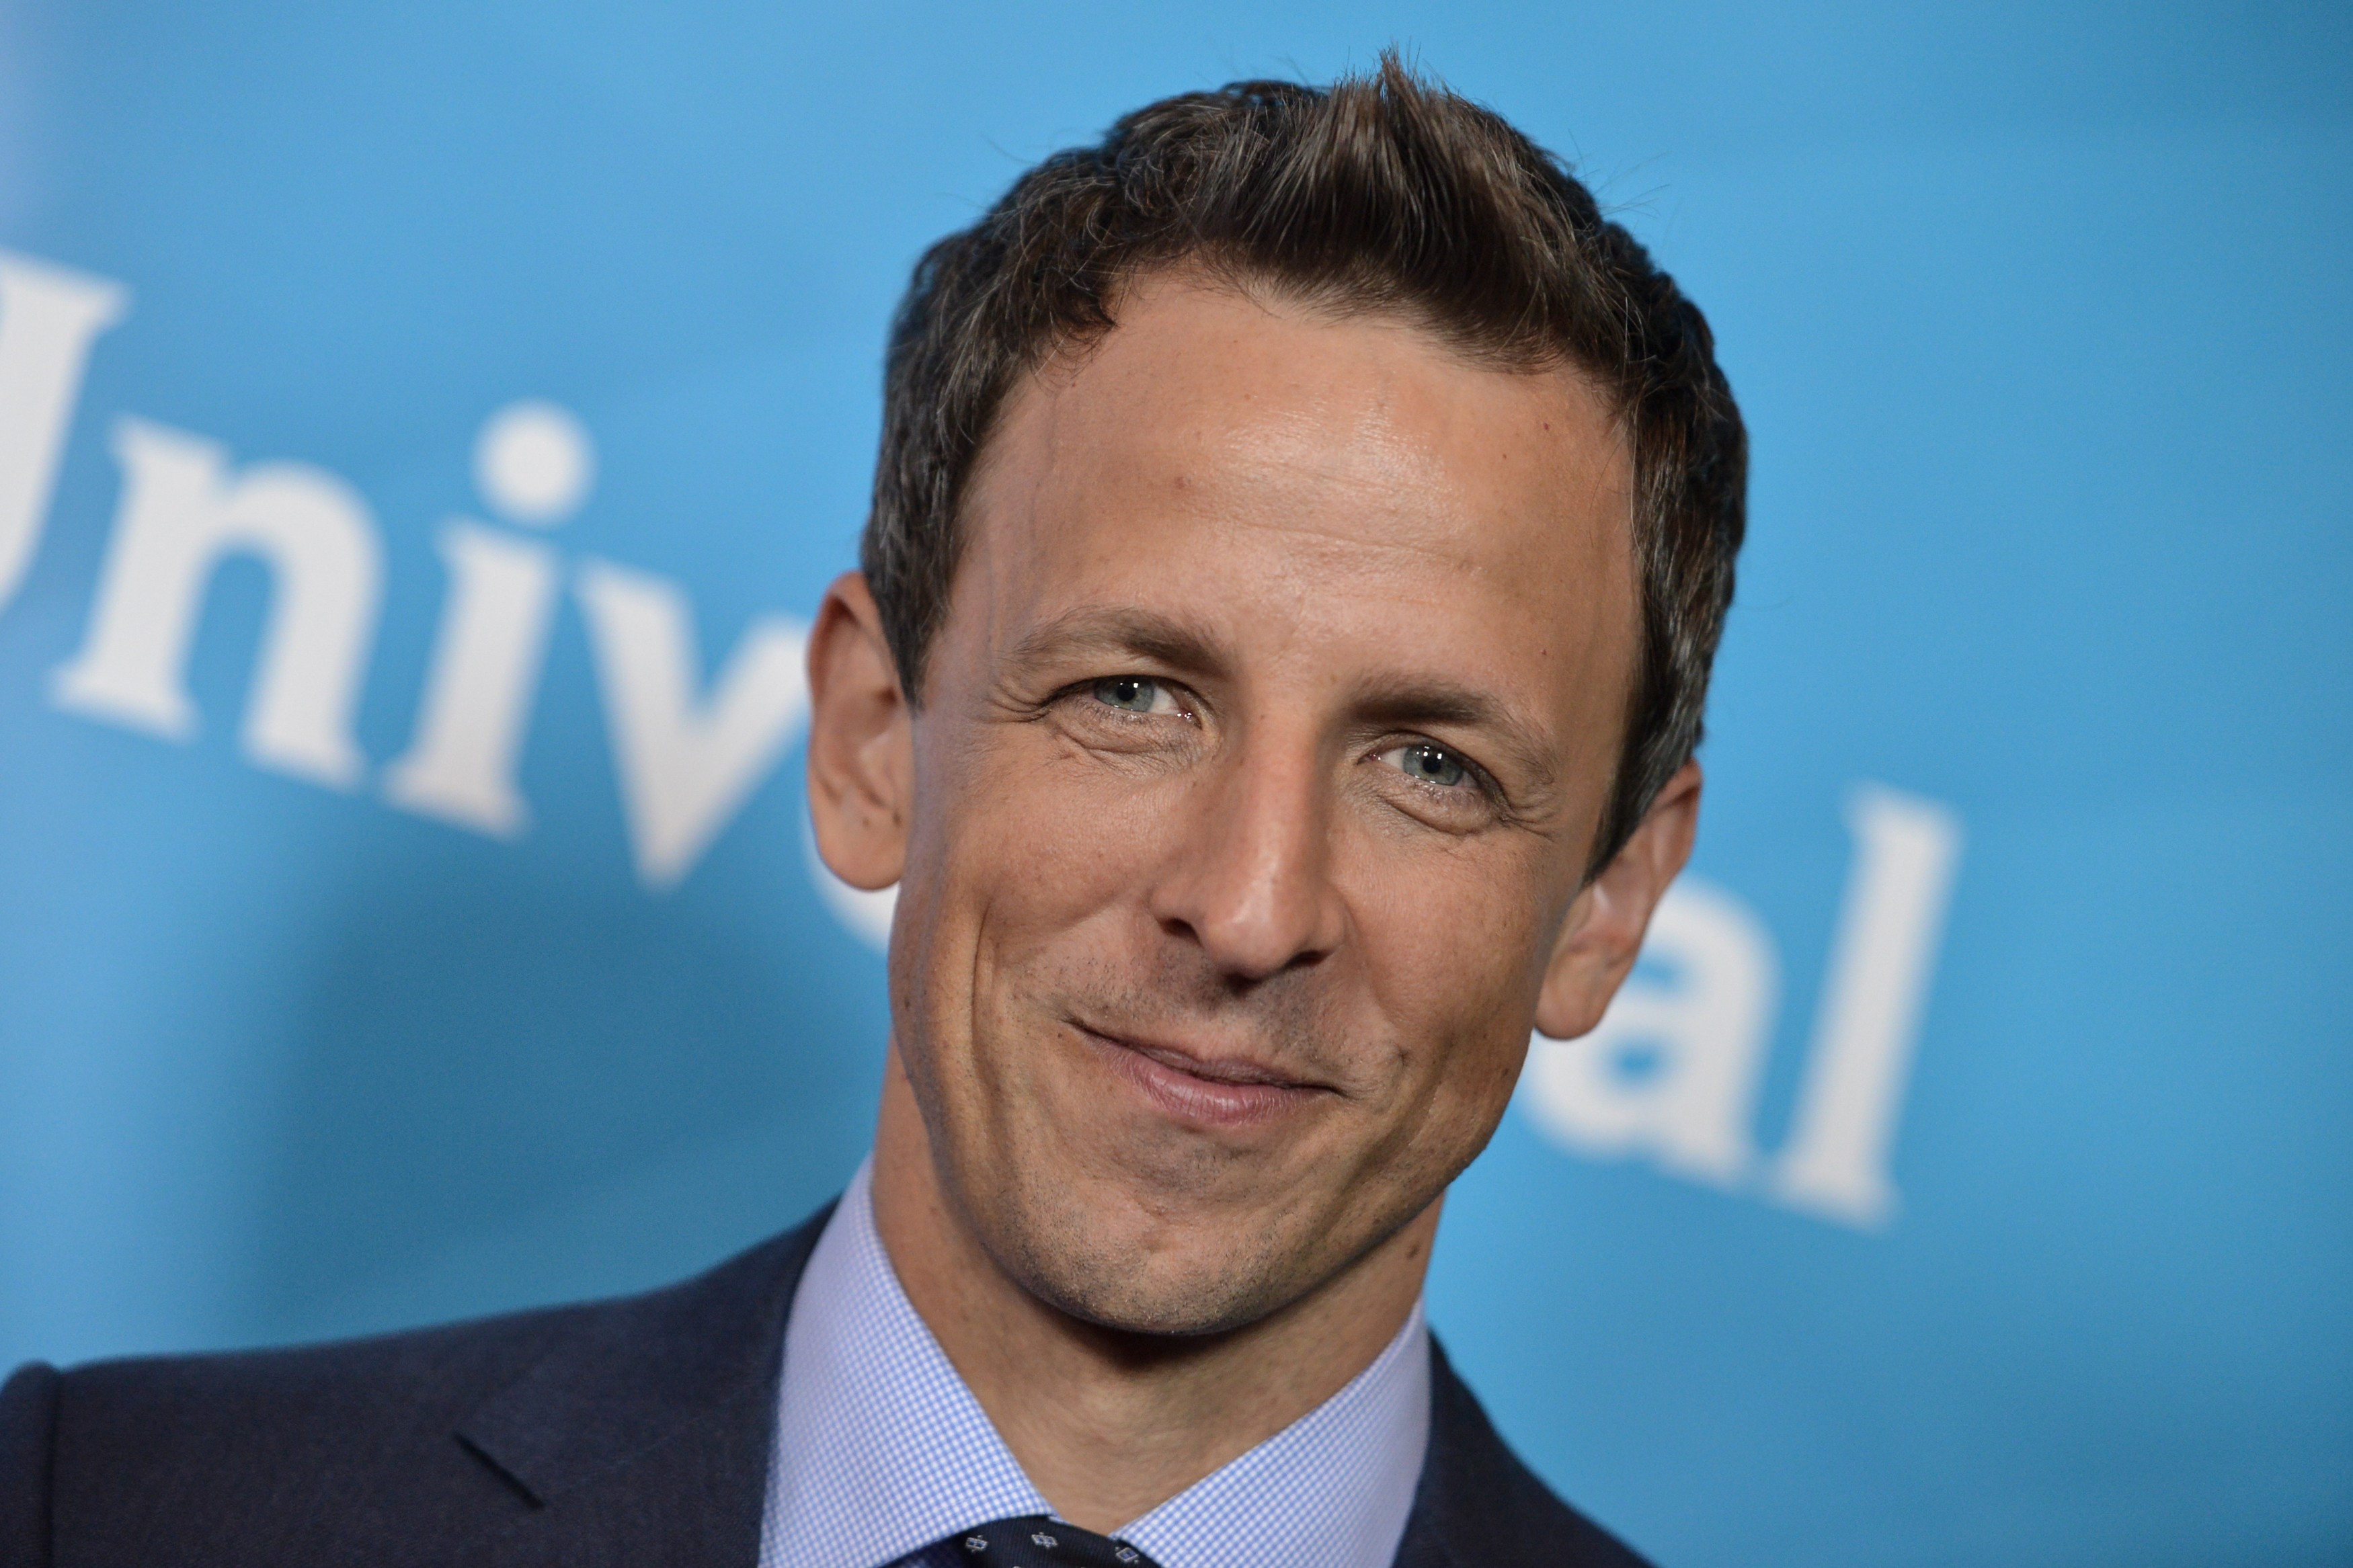 Seth Meyers on WTOP: Finding laughs amid heated campaign